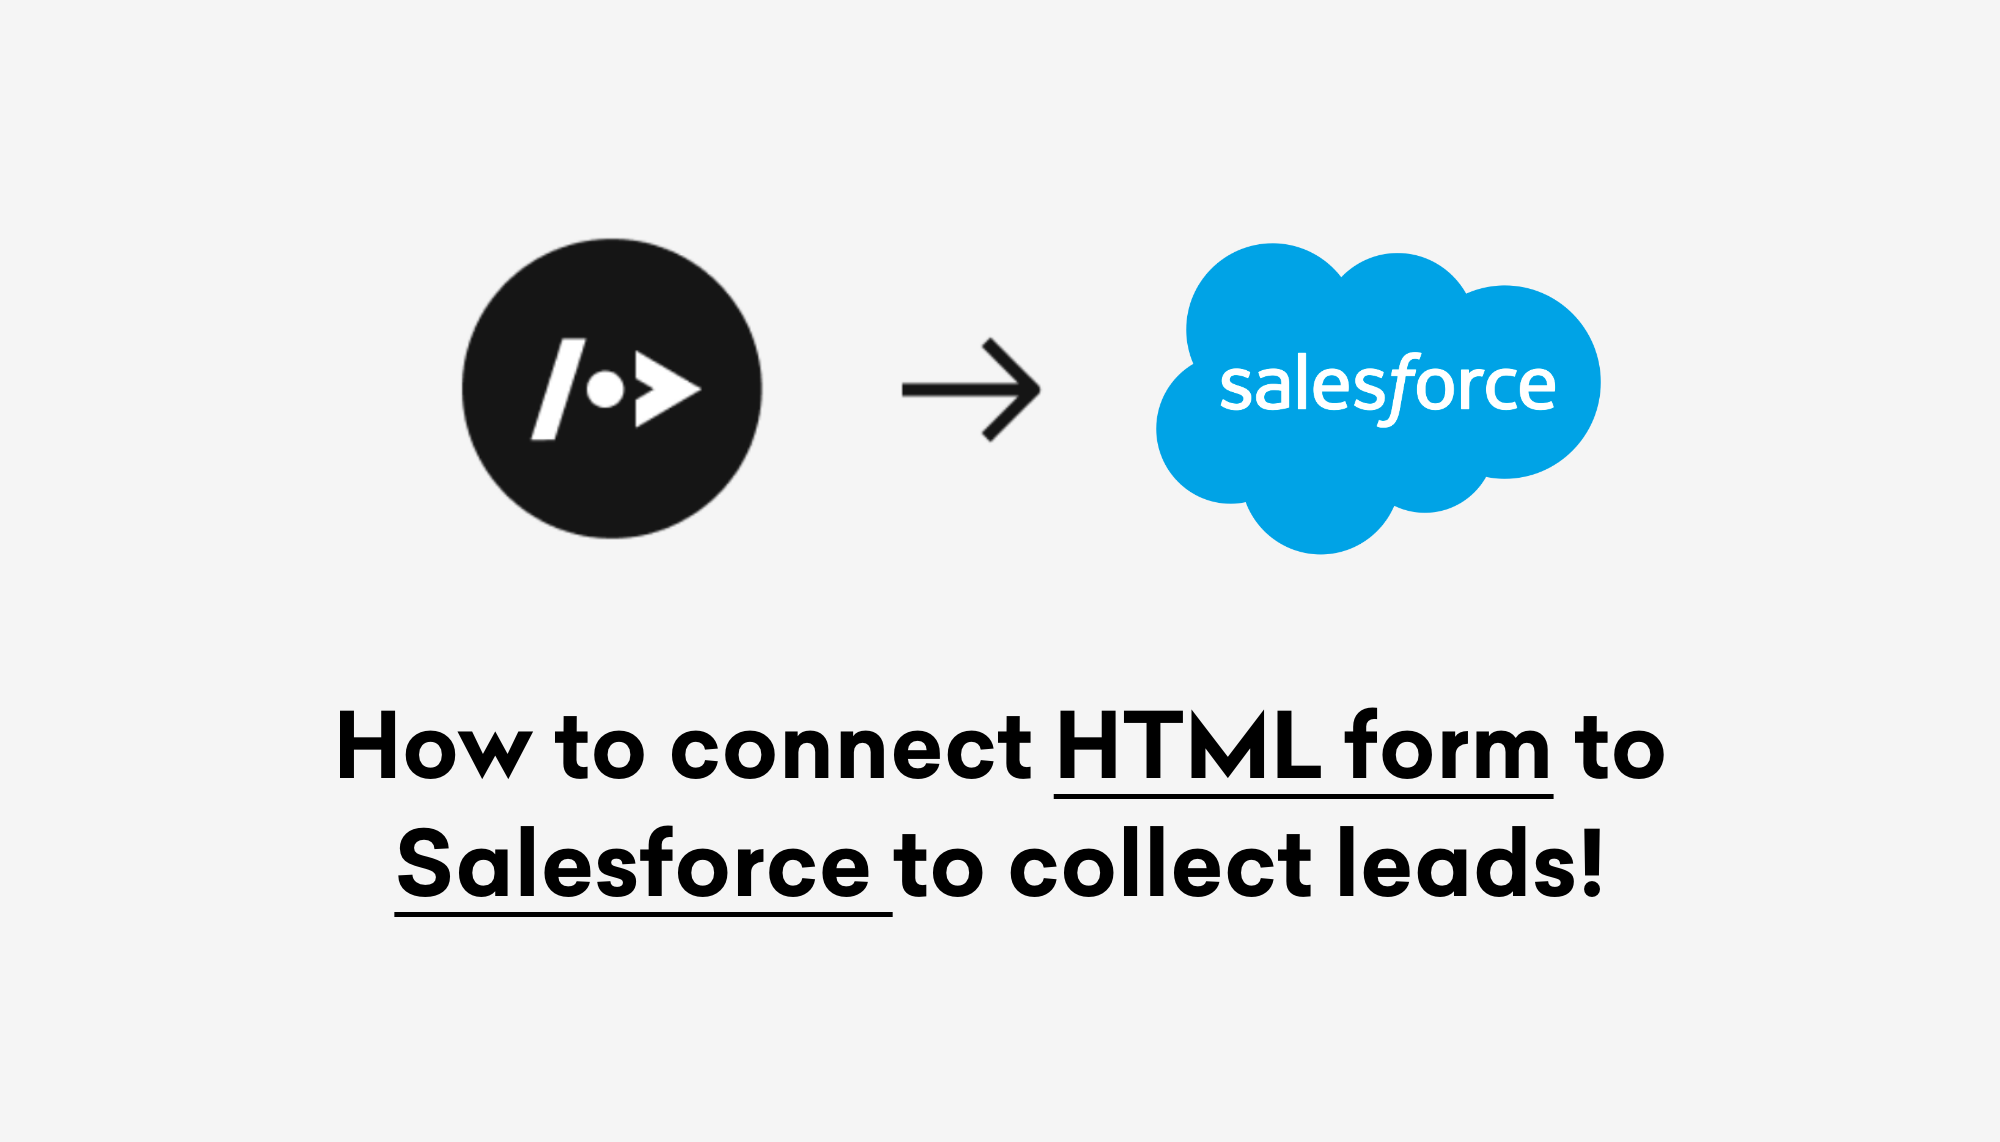 How to connect HTML form to Salesforce